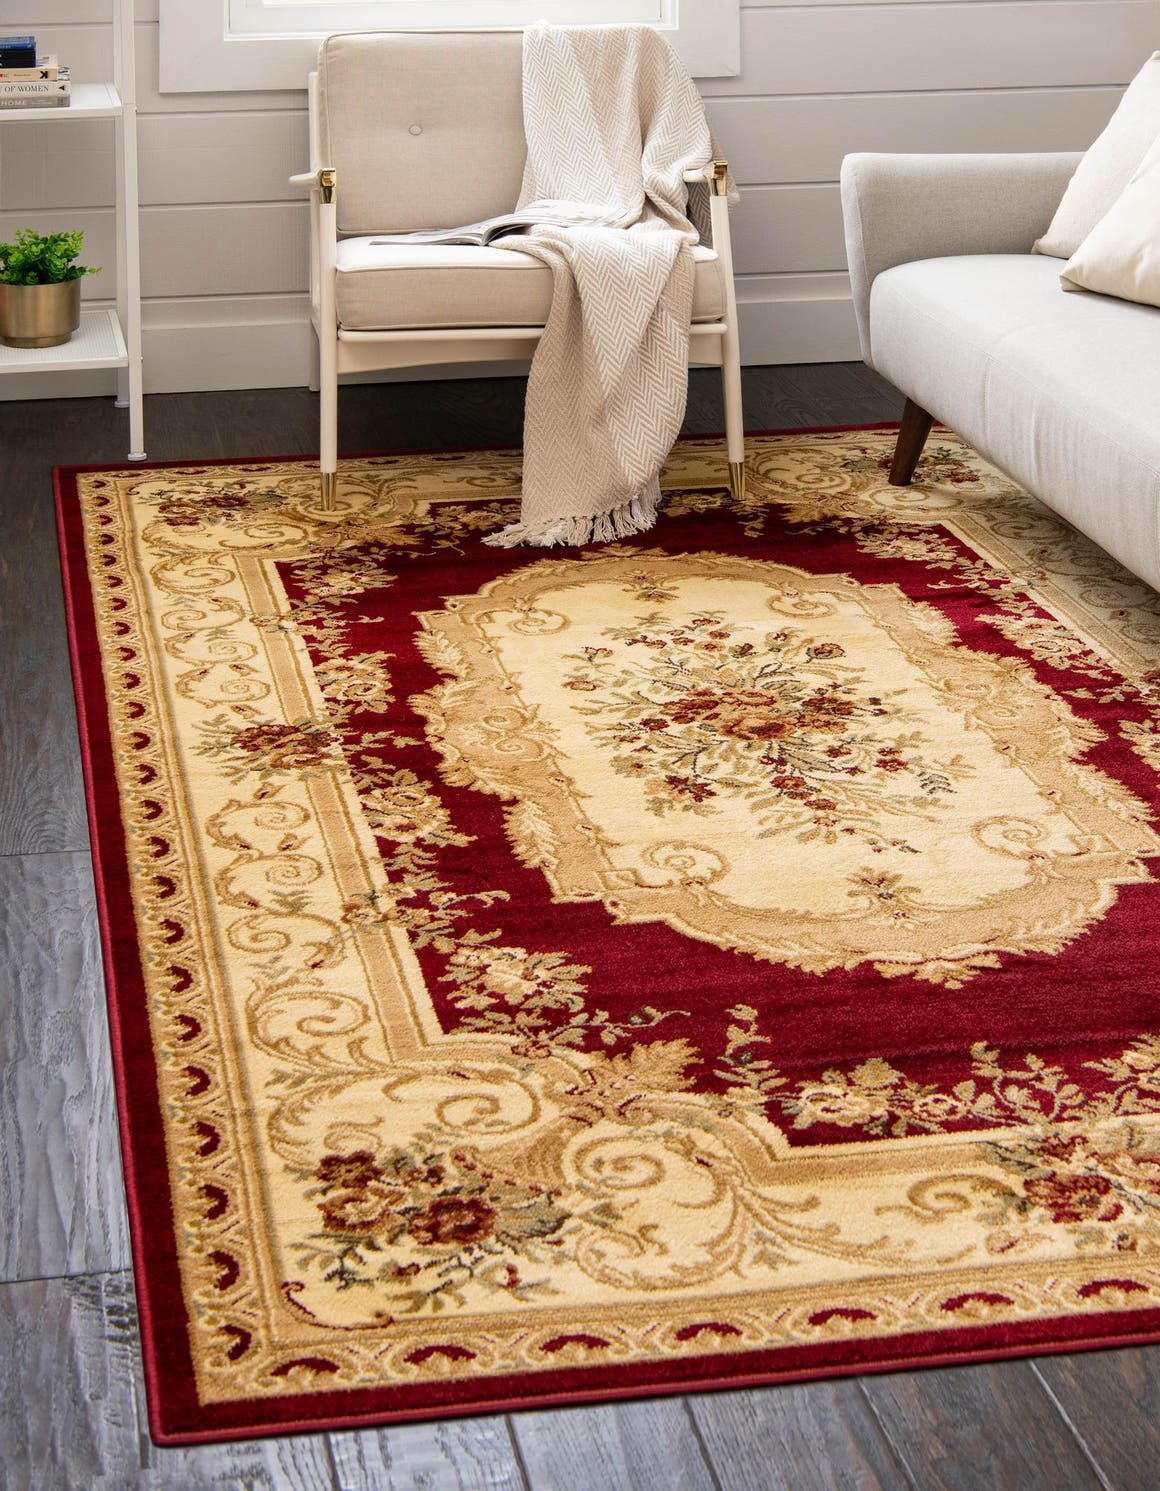 5' x 8' Classic Aubusson Rug main image